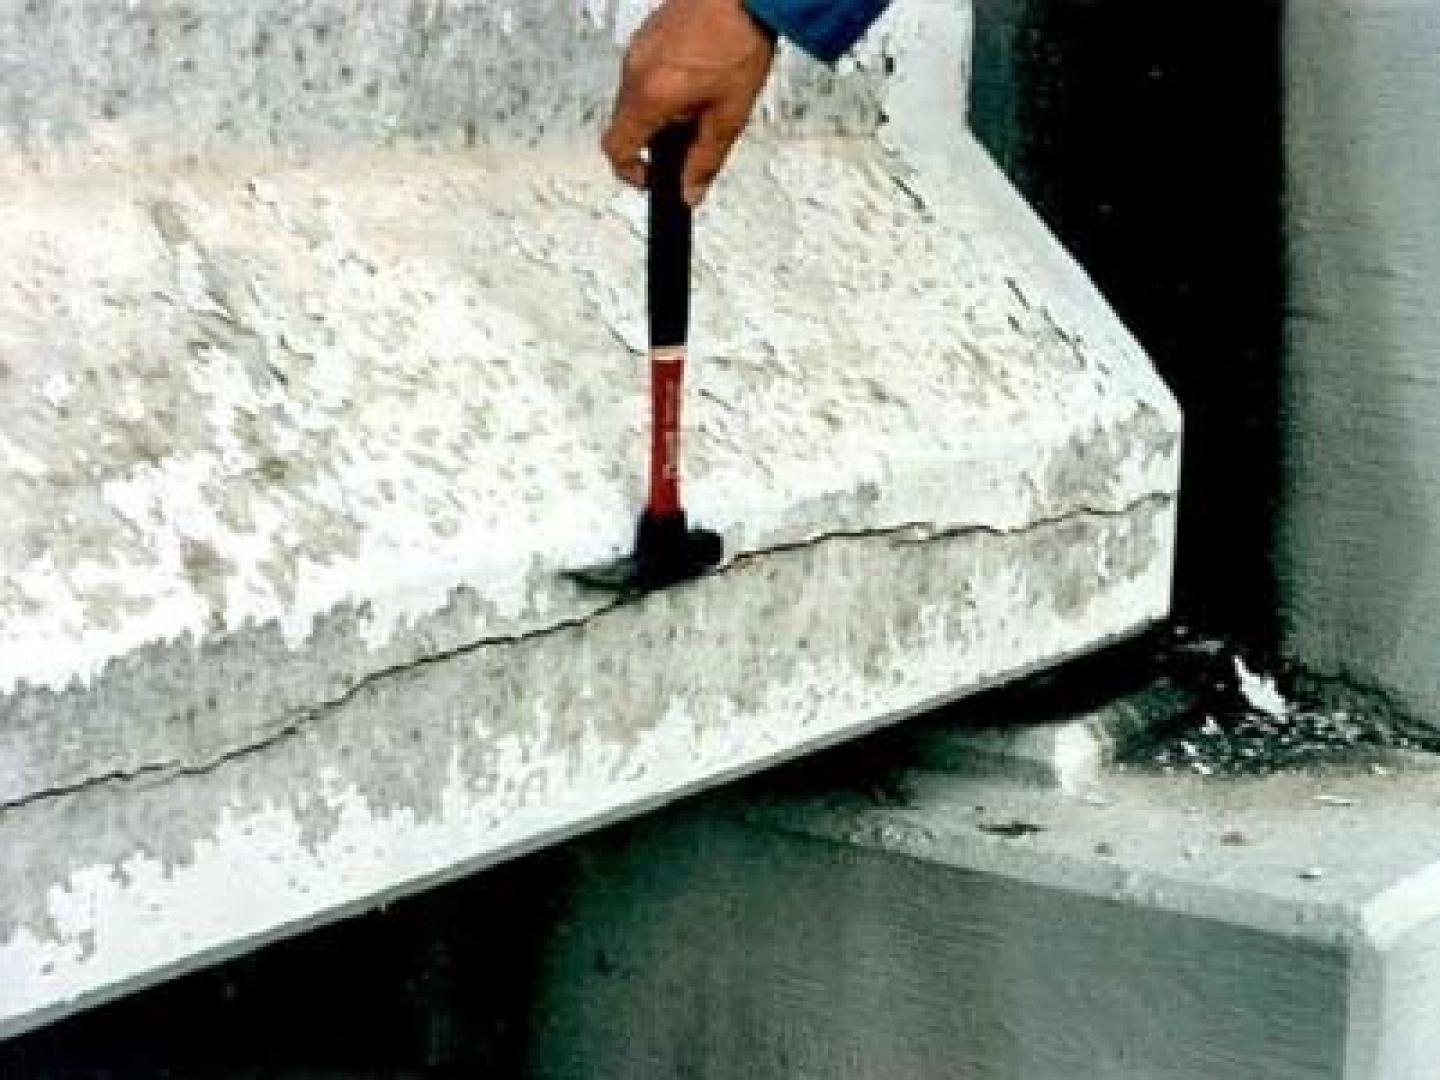 Crack in modern concrete structure due to Alkali-Silica Reaction